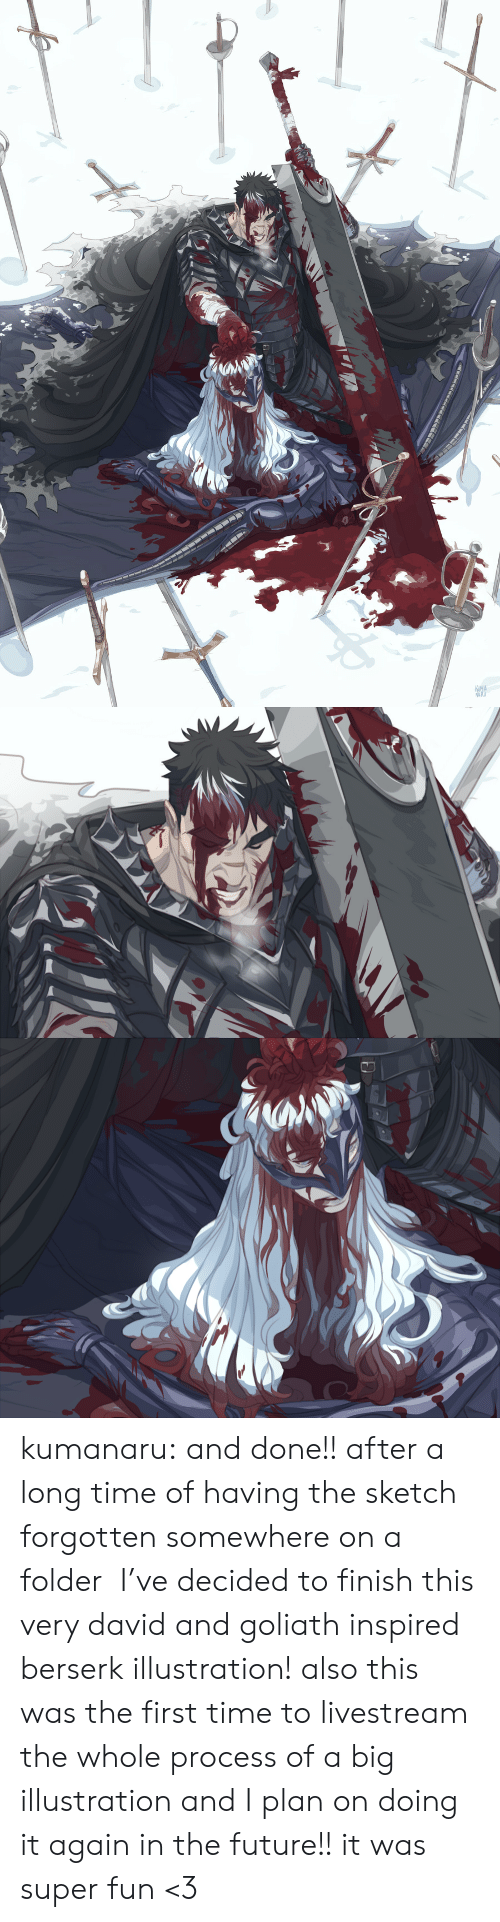 Process: KUMA  NAKU kumanaru:  and done!! after a long time of having the sketch forgotten somewhere on a folder  I've decided to finish this very david and goliath inspired berserk illustration!  also this was the first time to livestream the whole process of a big illustration and I plan on doing it again in the future!! it was super fun <3